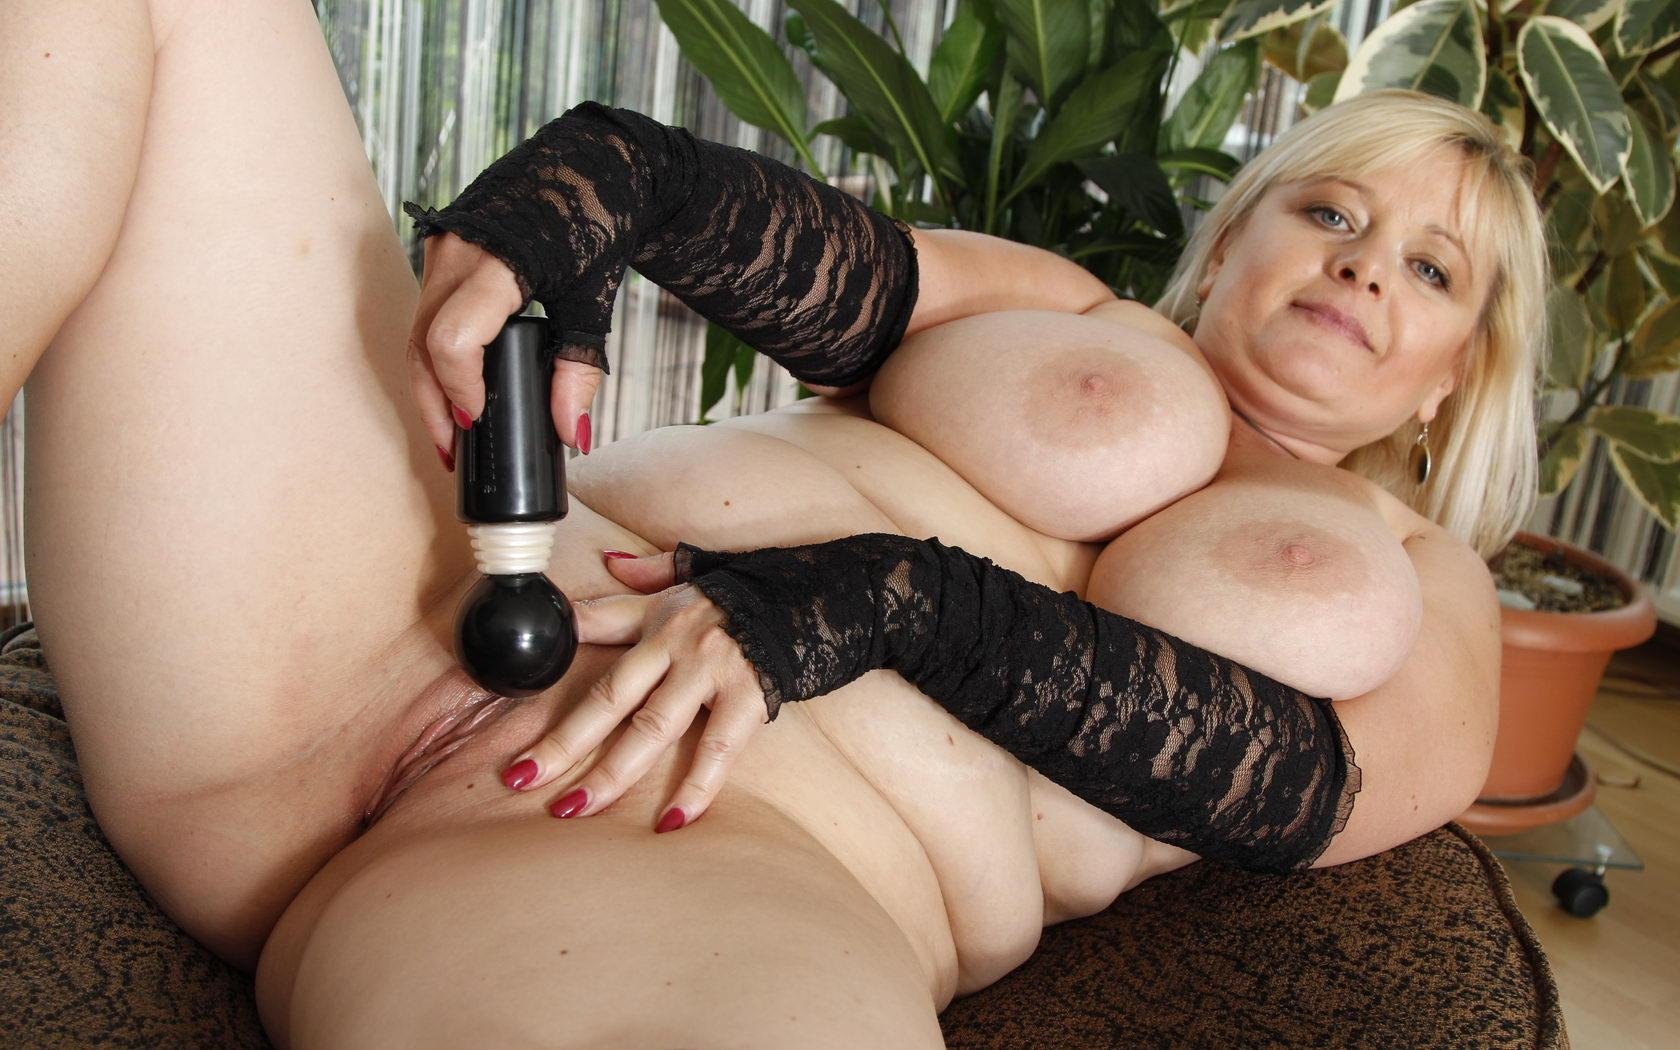 Heather a 64 old  is a cute aged whore from netherlands